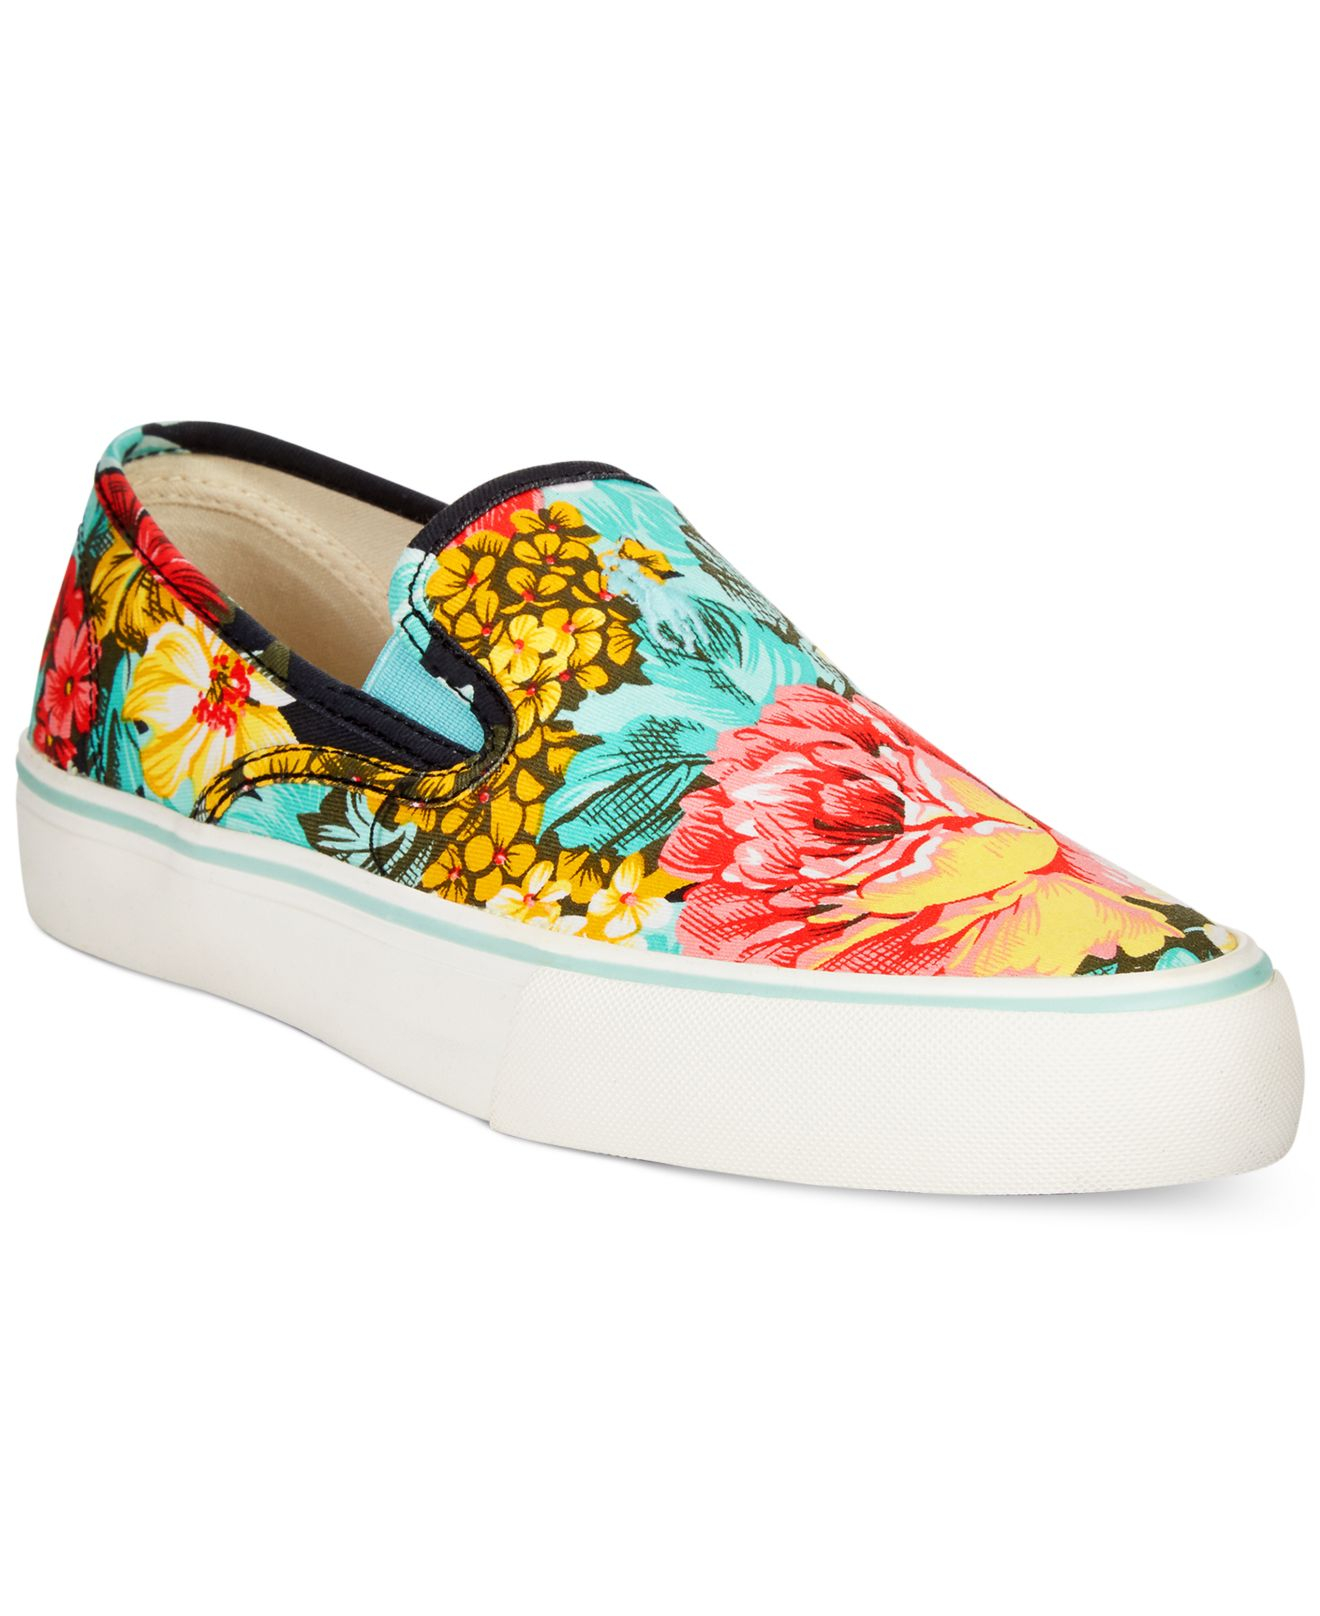 polo ralph lauren shoes bentwinds sneakers cliparts flowers